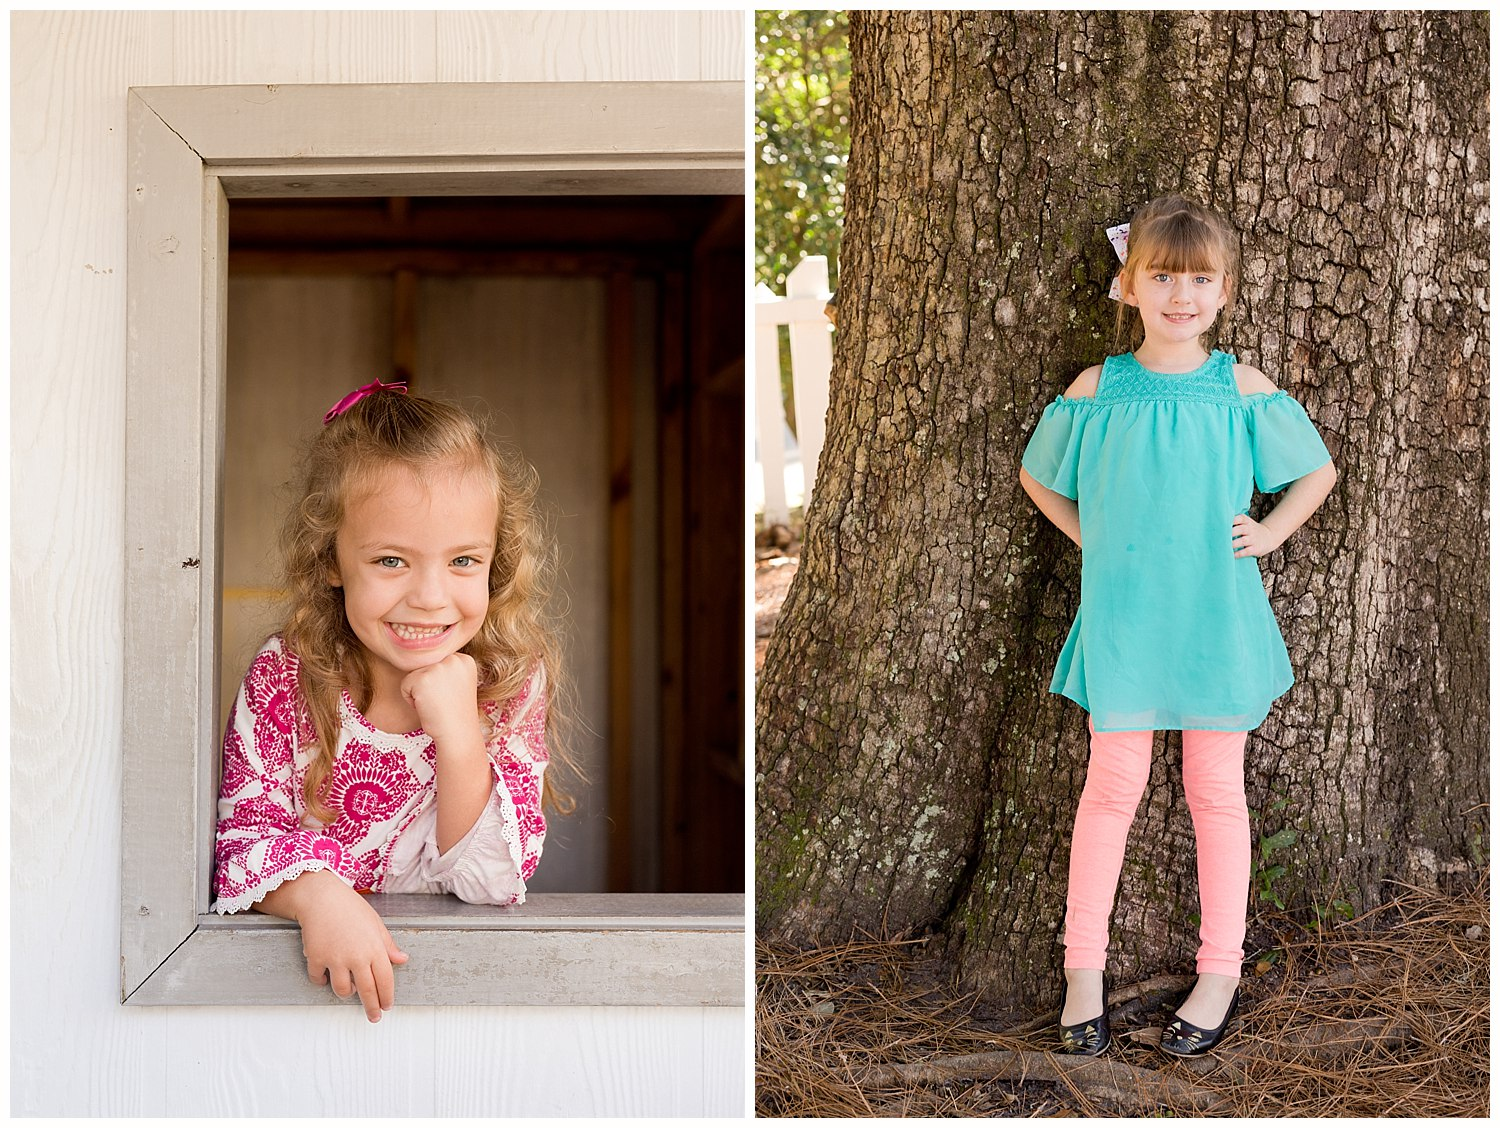 Ocean Springs children's photographer